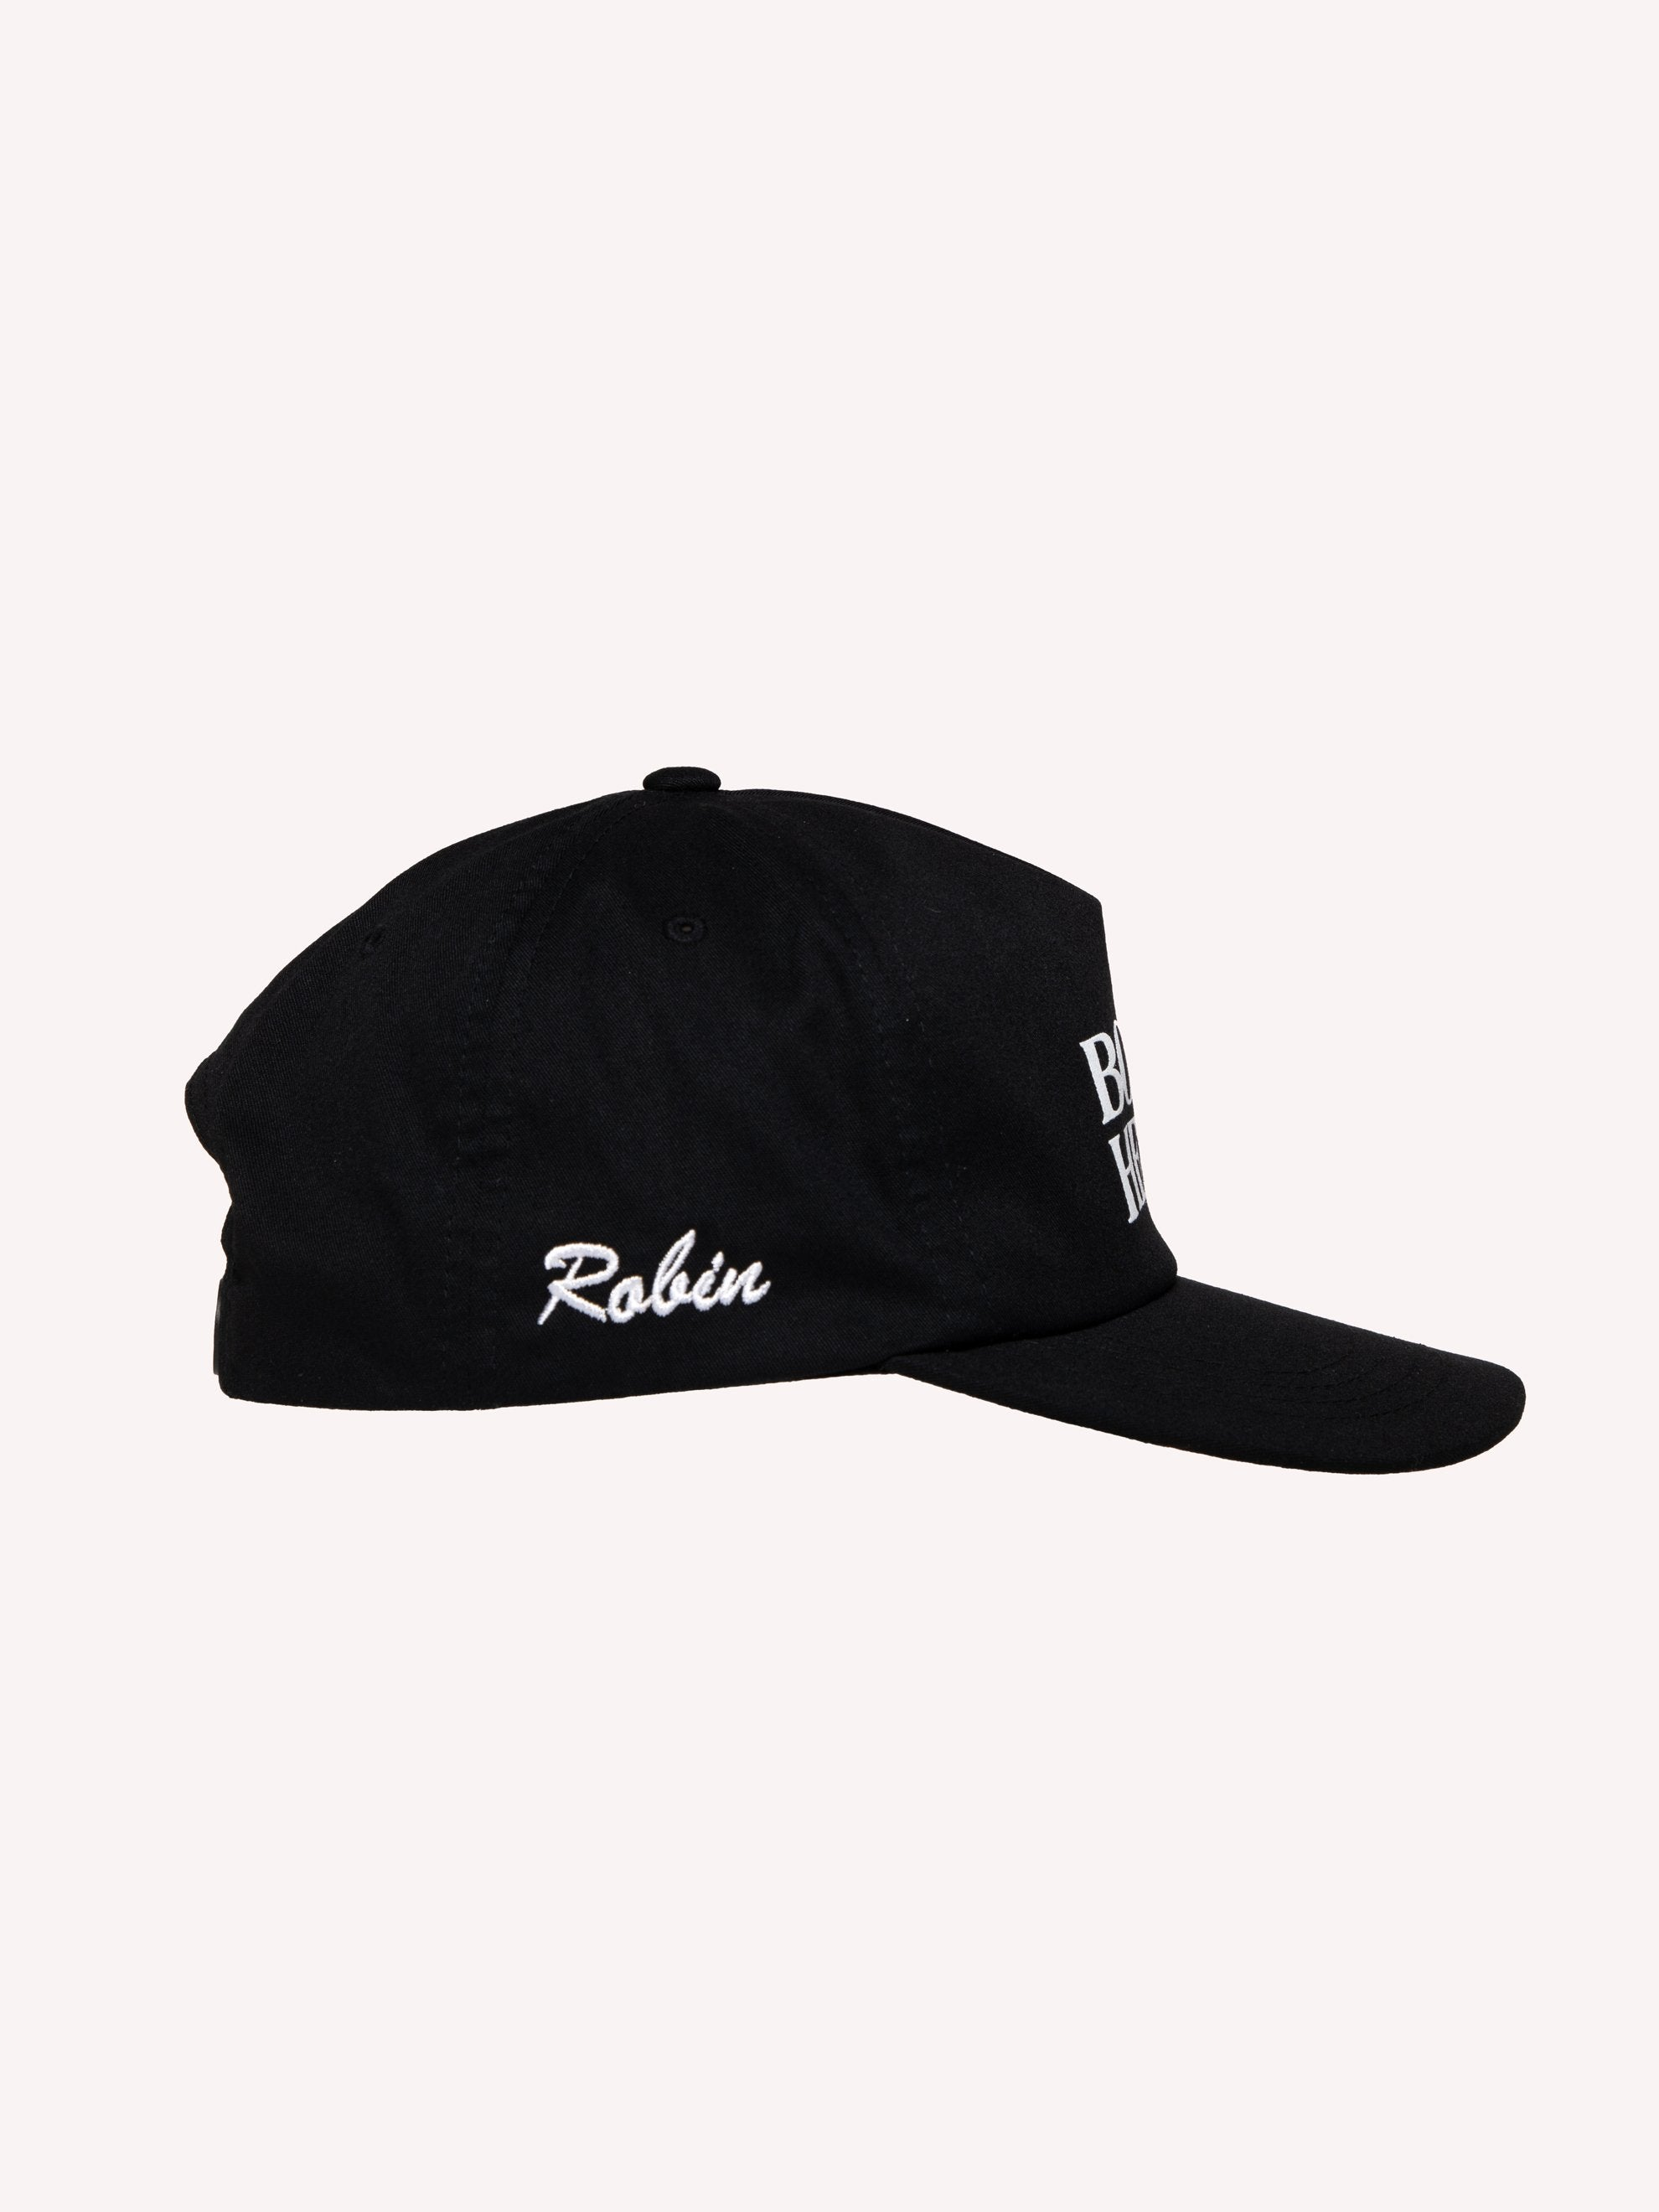 Black Body Heat / Robin Cap 2